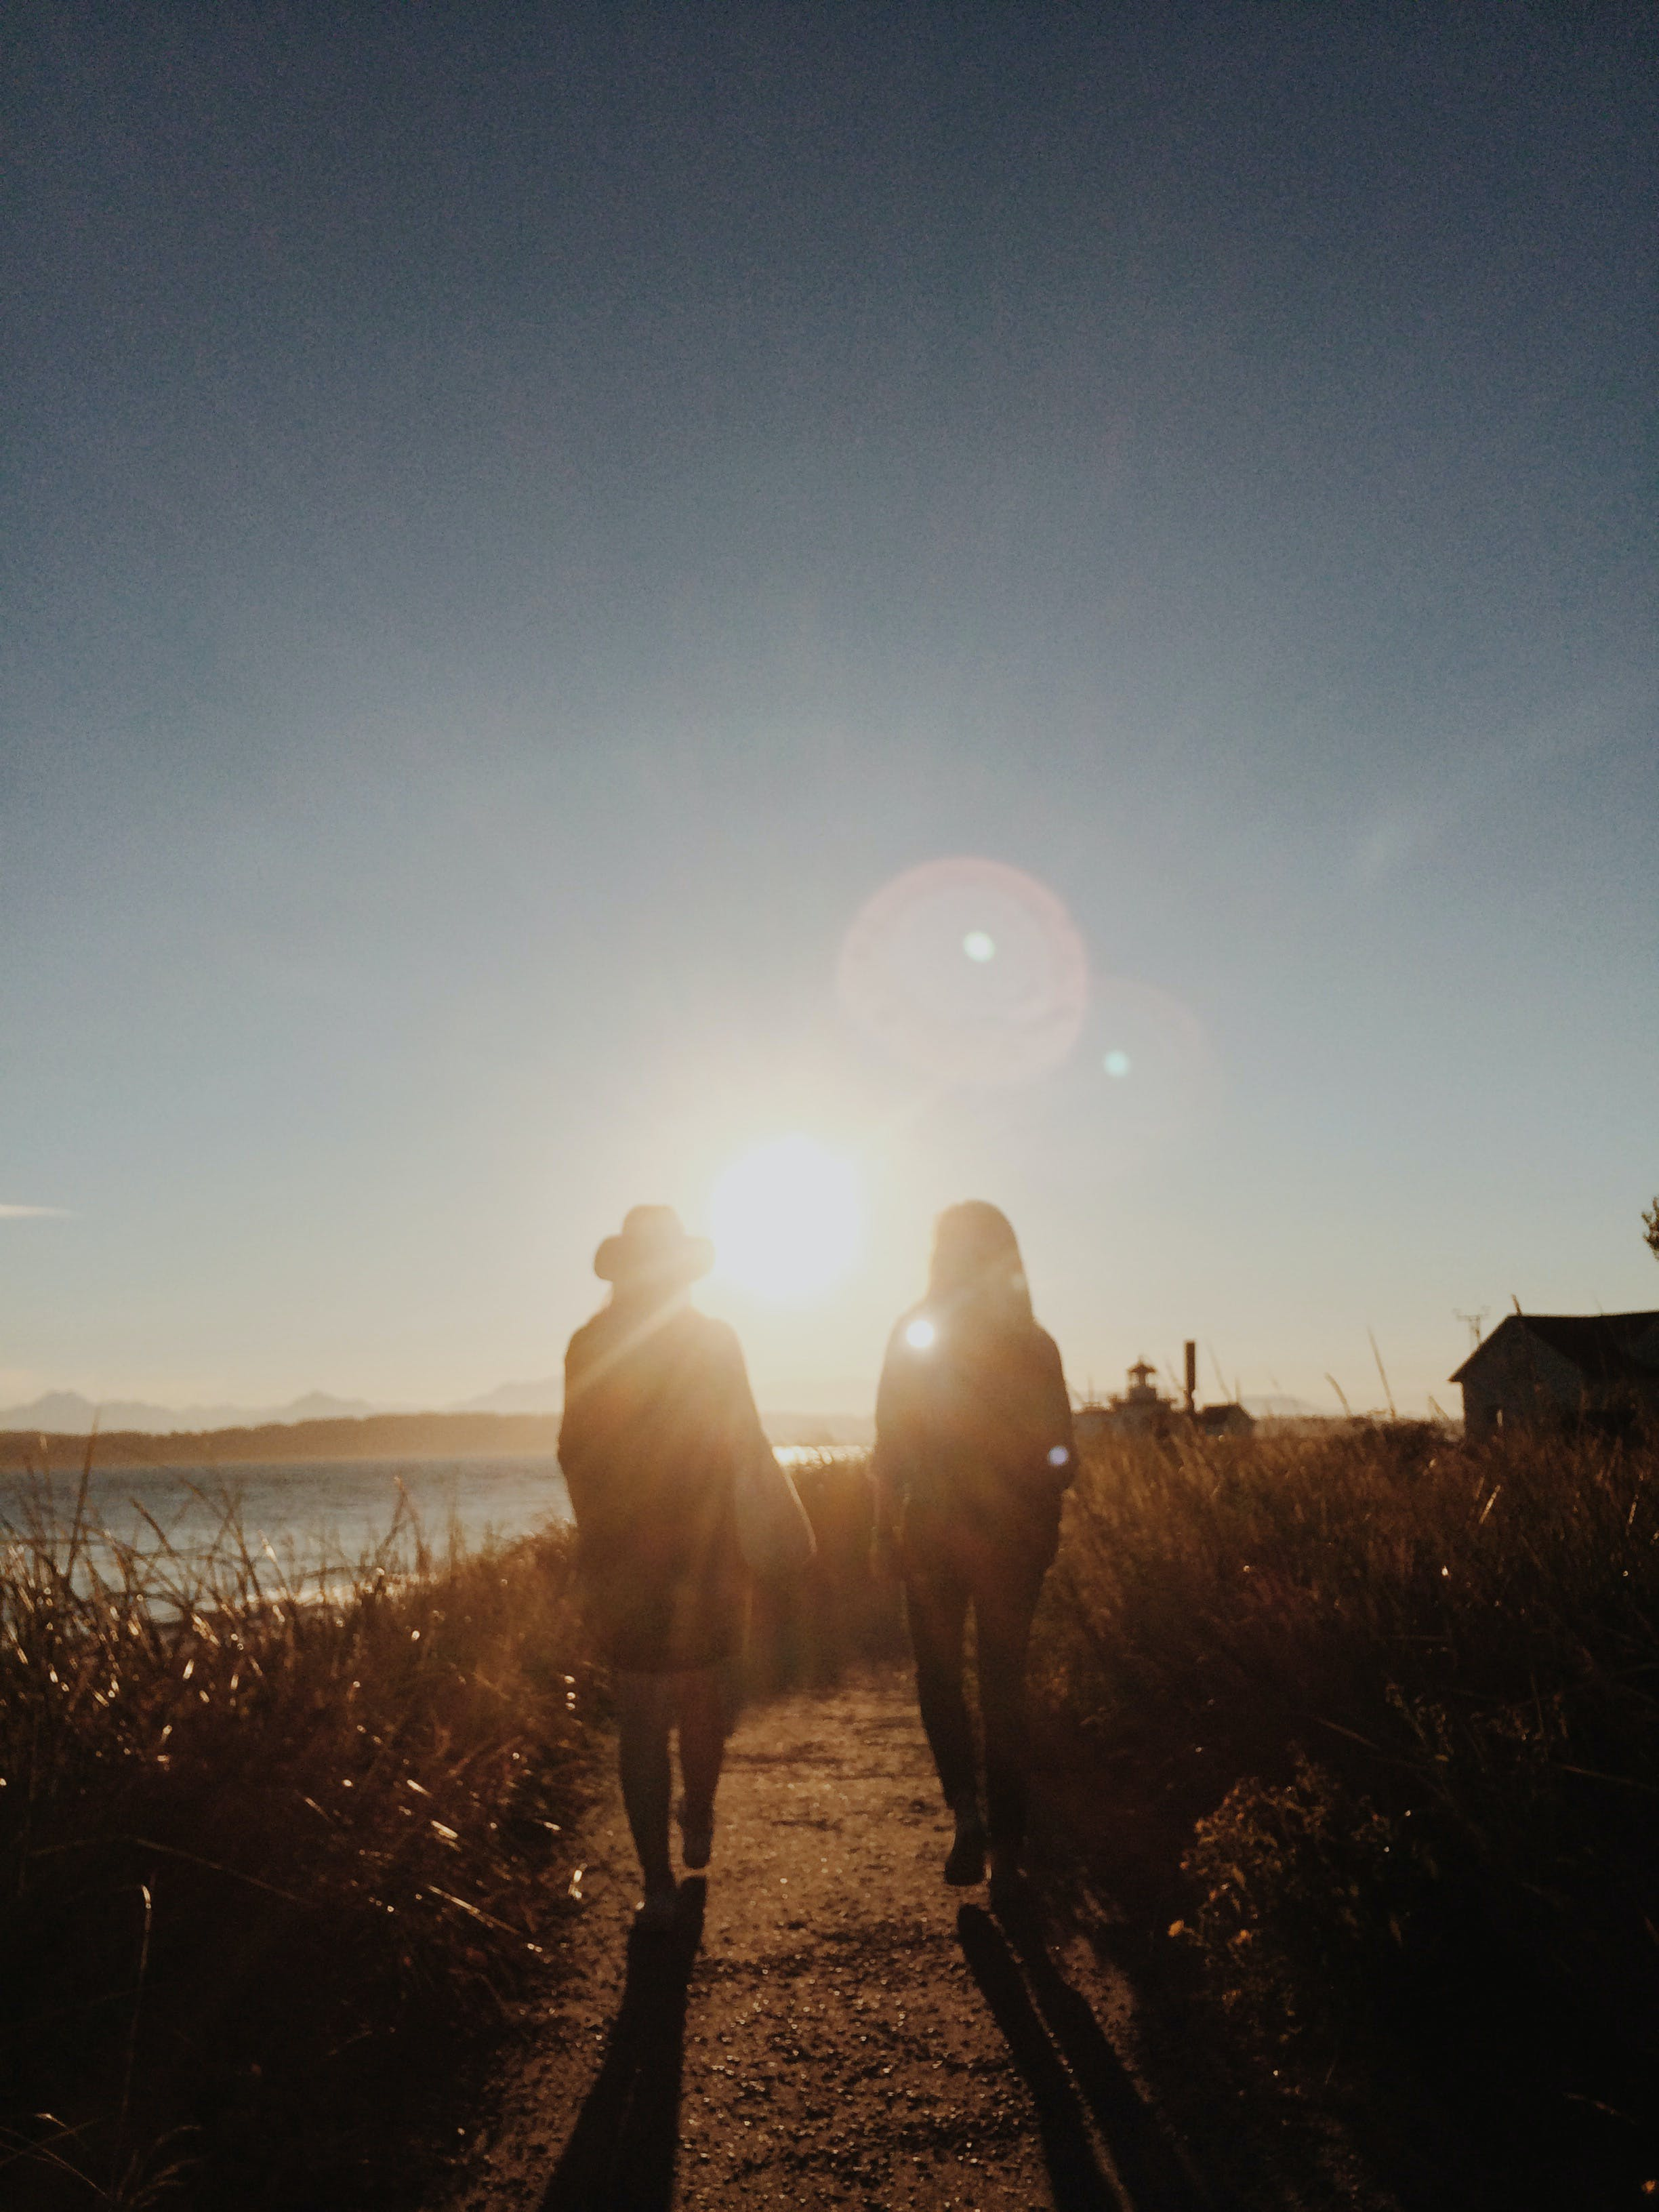 Silhouette of Two People Walking Near Body of Water during Golden Hour